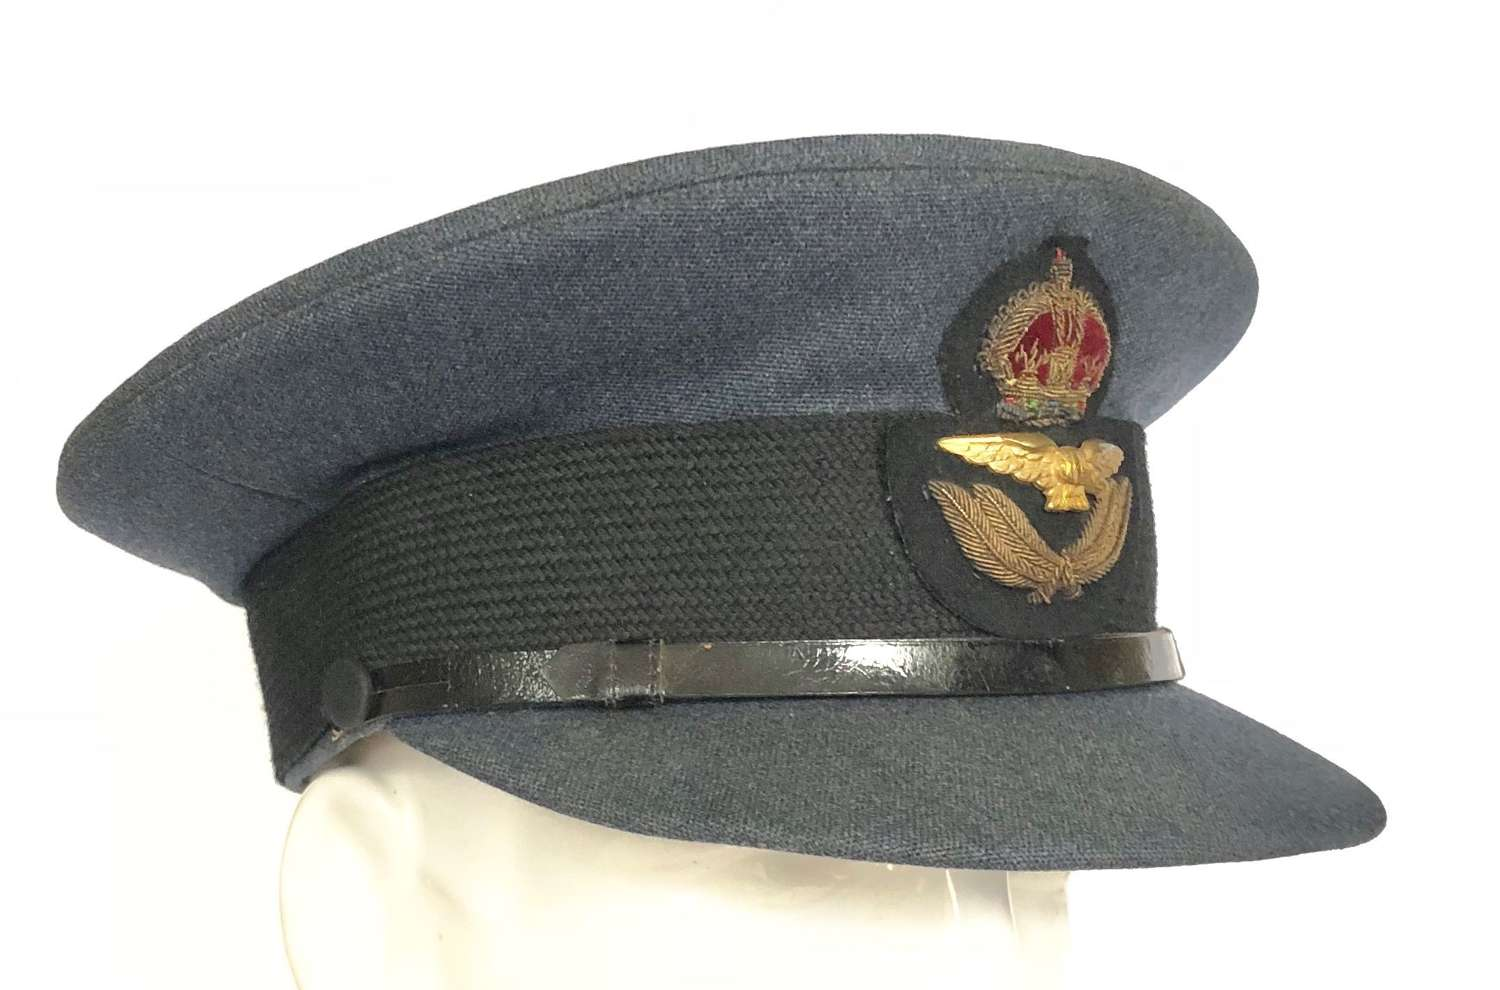 WW2 Period RAF Officer's Cap by Burberry's.